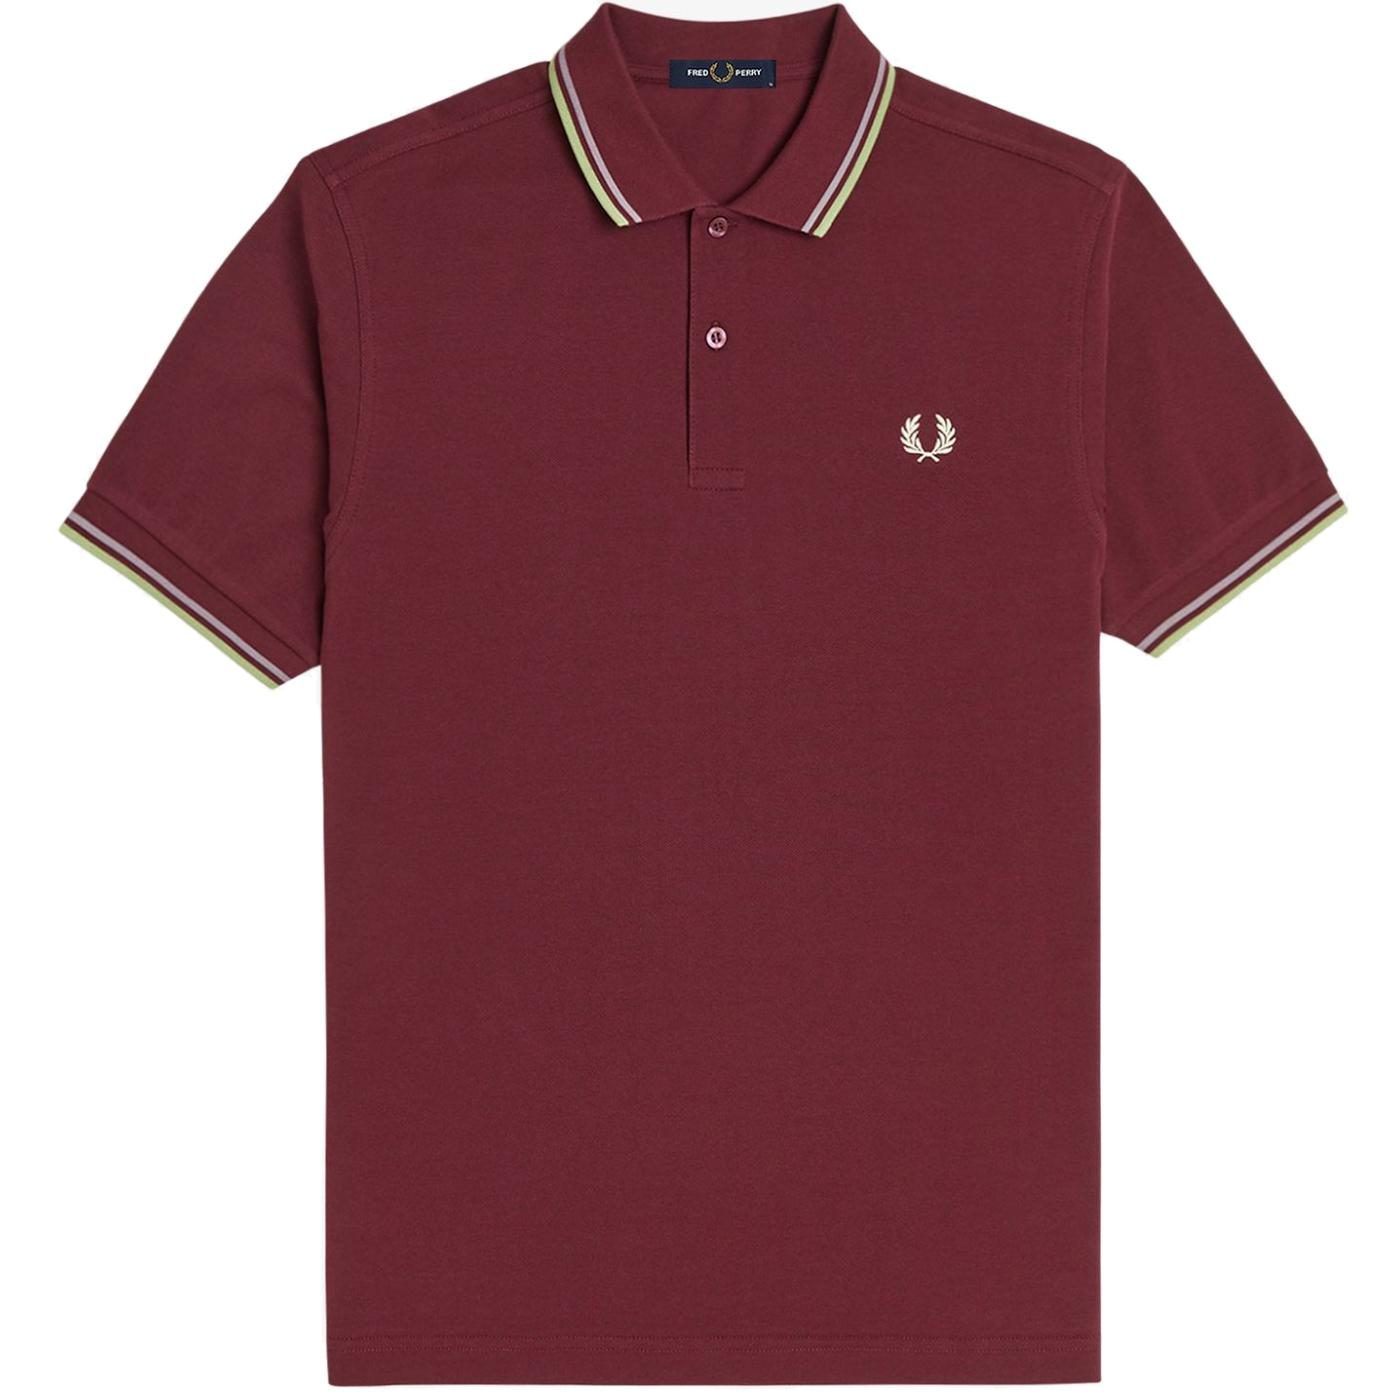 FRED PERRY M3600 Mens Twin Tipped Pique Polo A/R/W